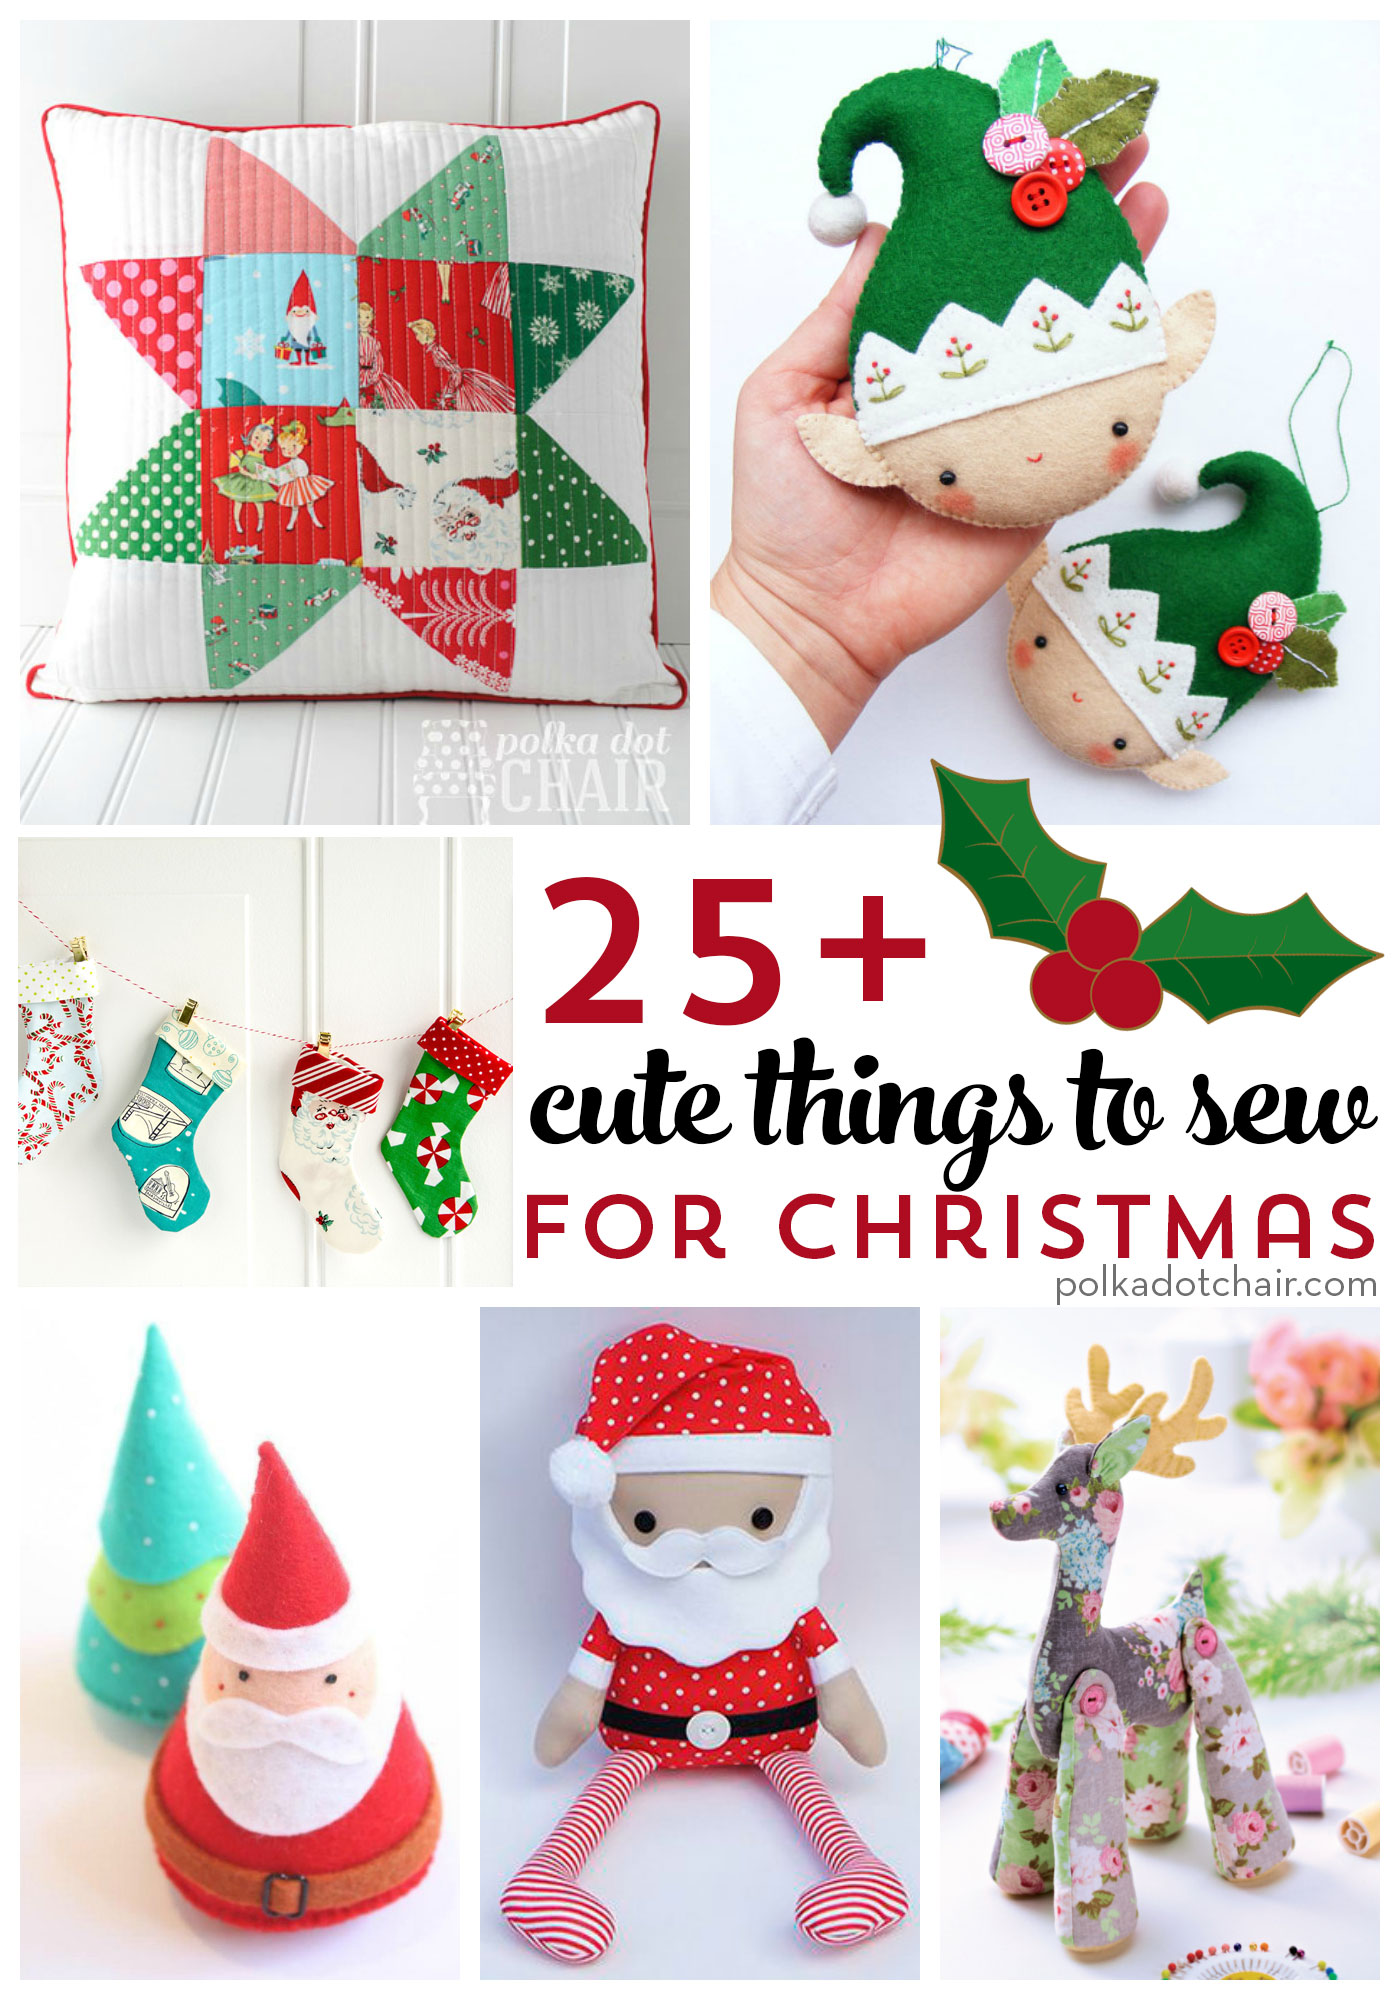 Cute Pillow Ideas To Sew : More than 25 Cute Things to Sew for Christmas - The Polka Dot Chair